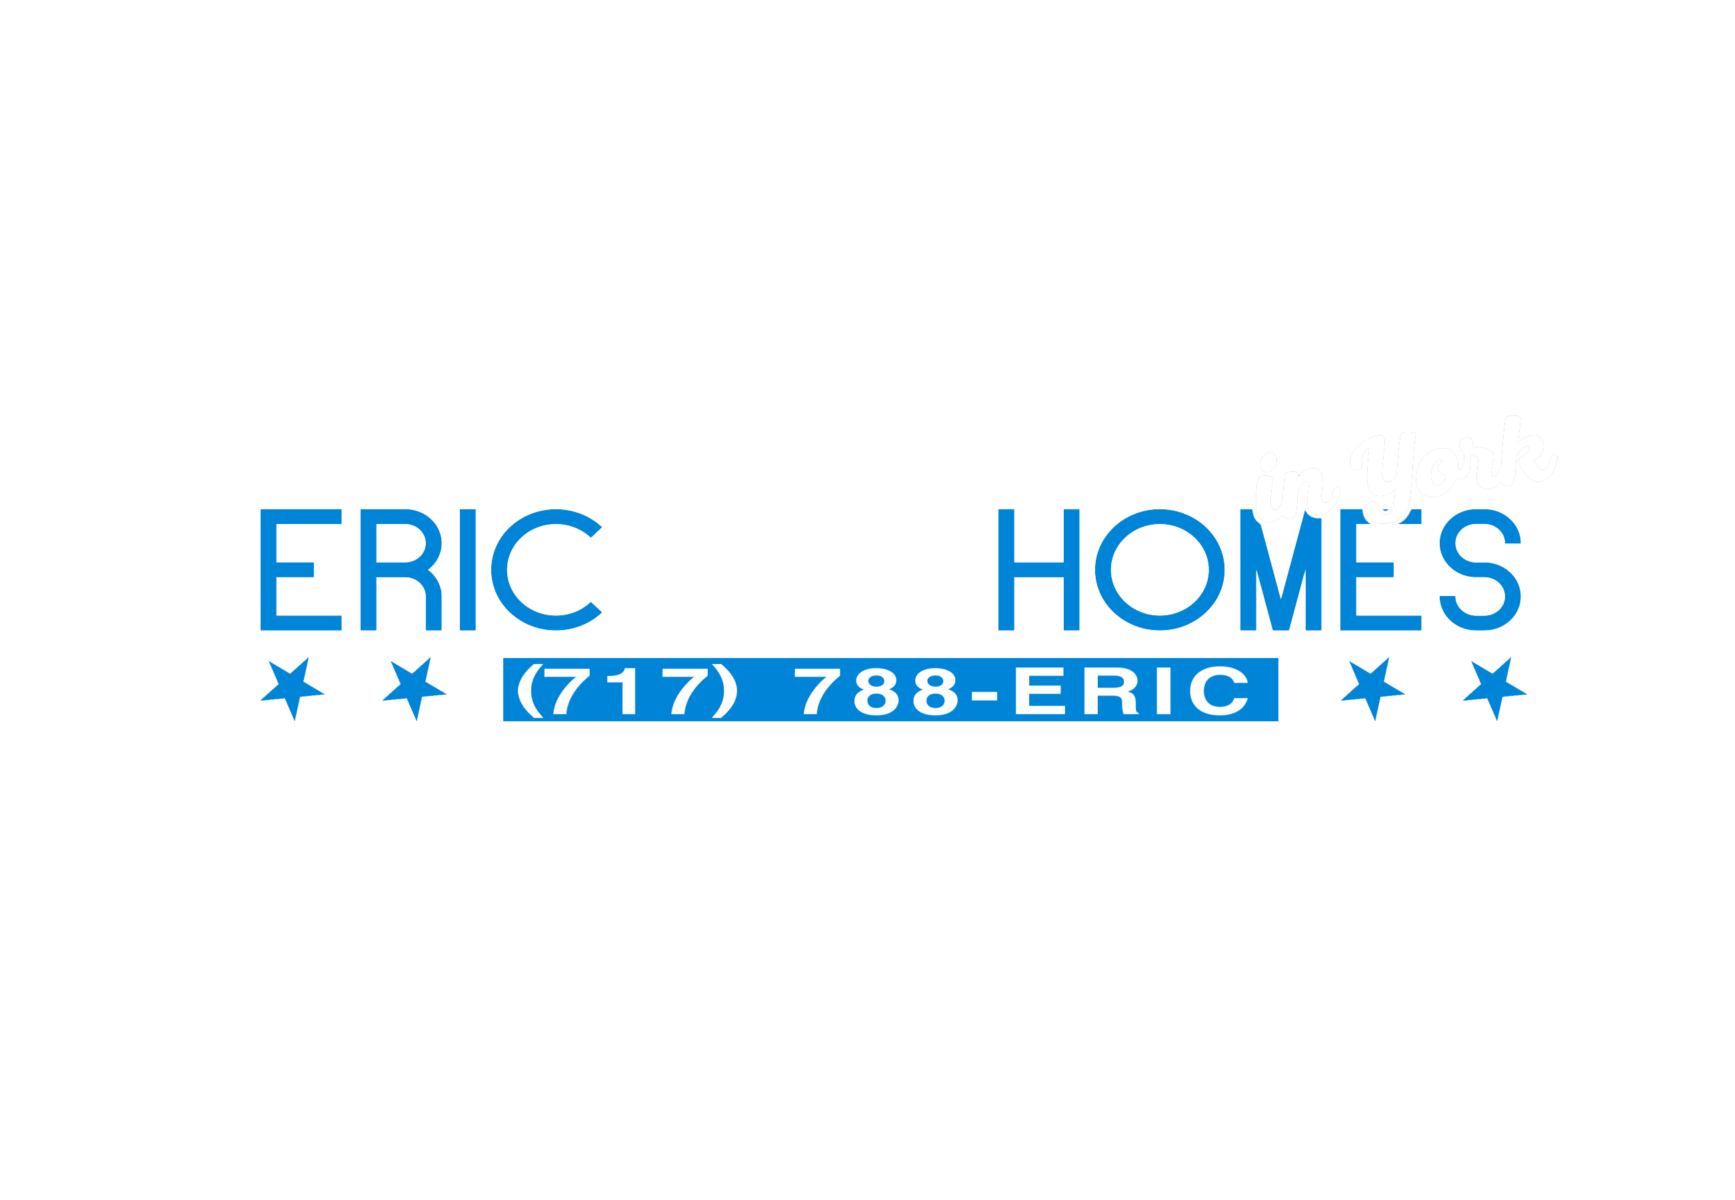 Eric Buys Homes In York logo